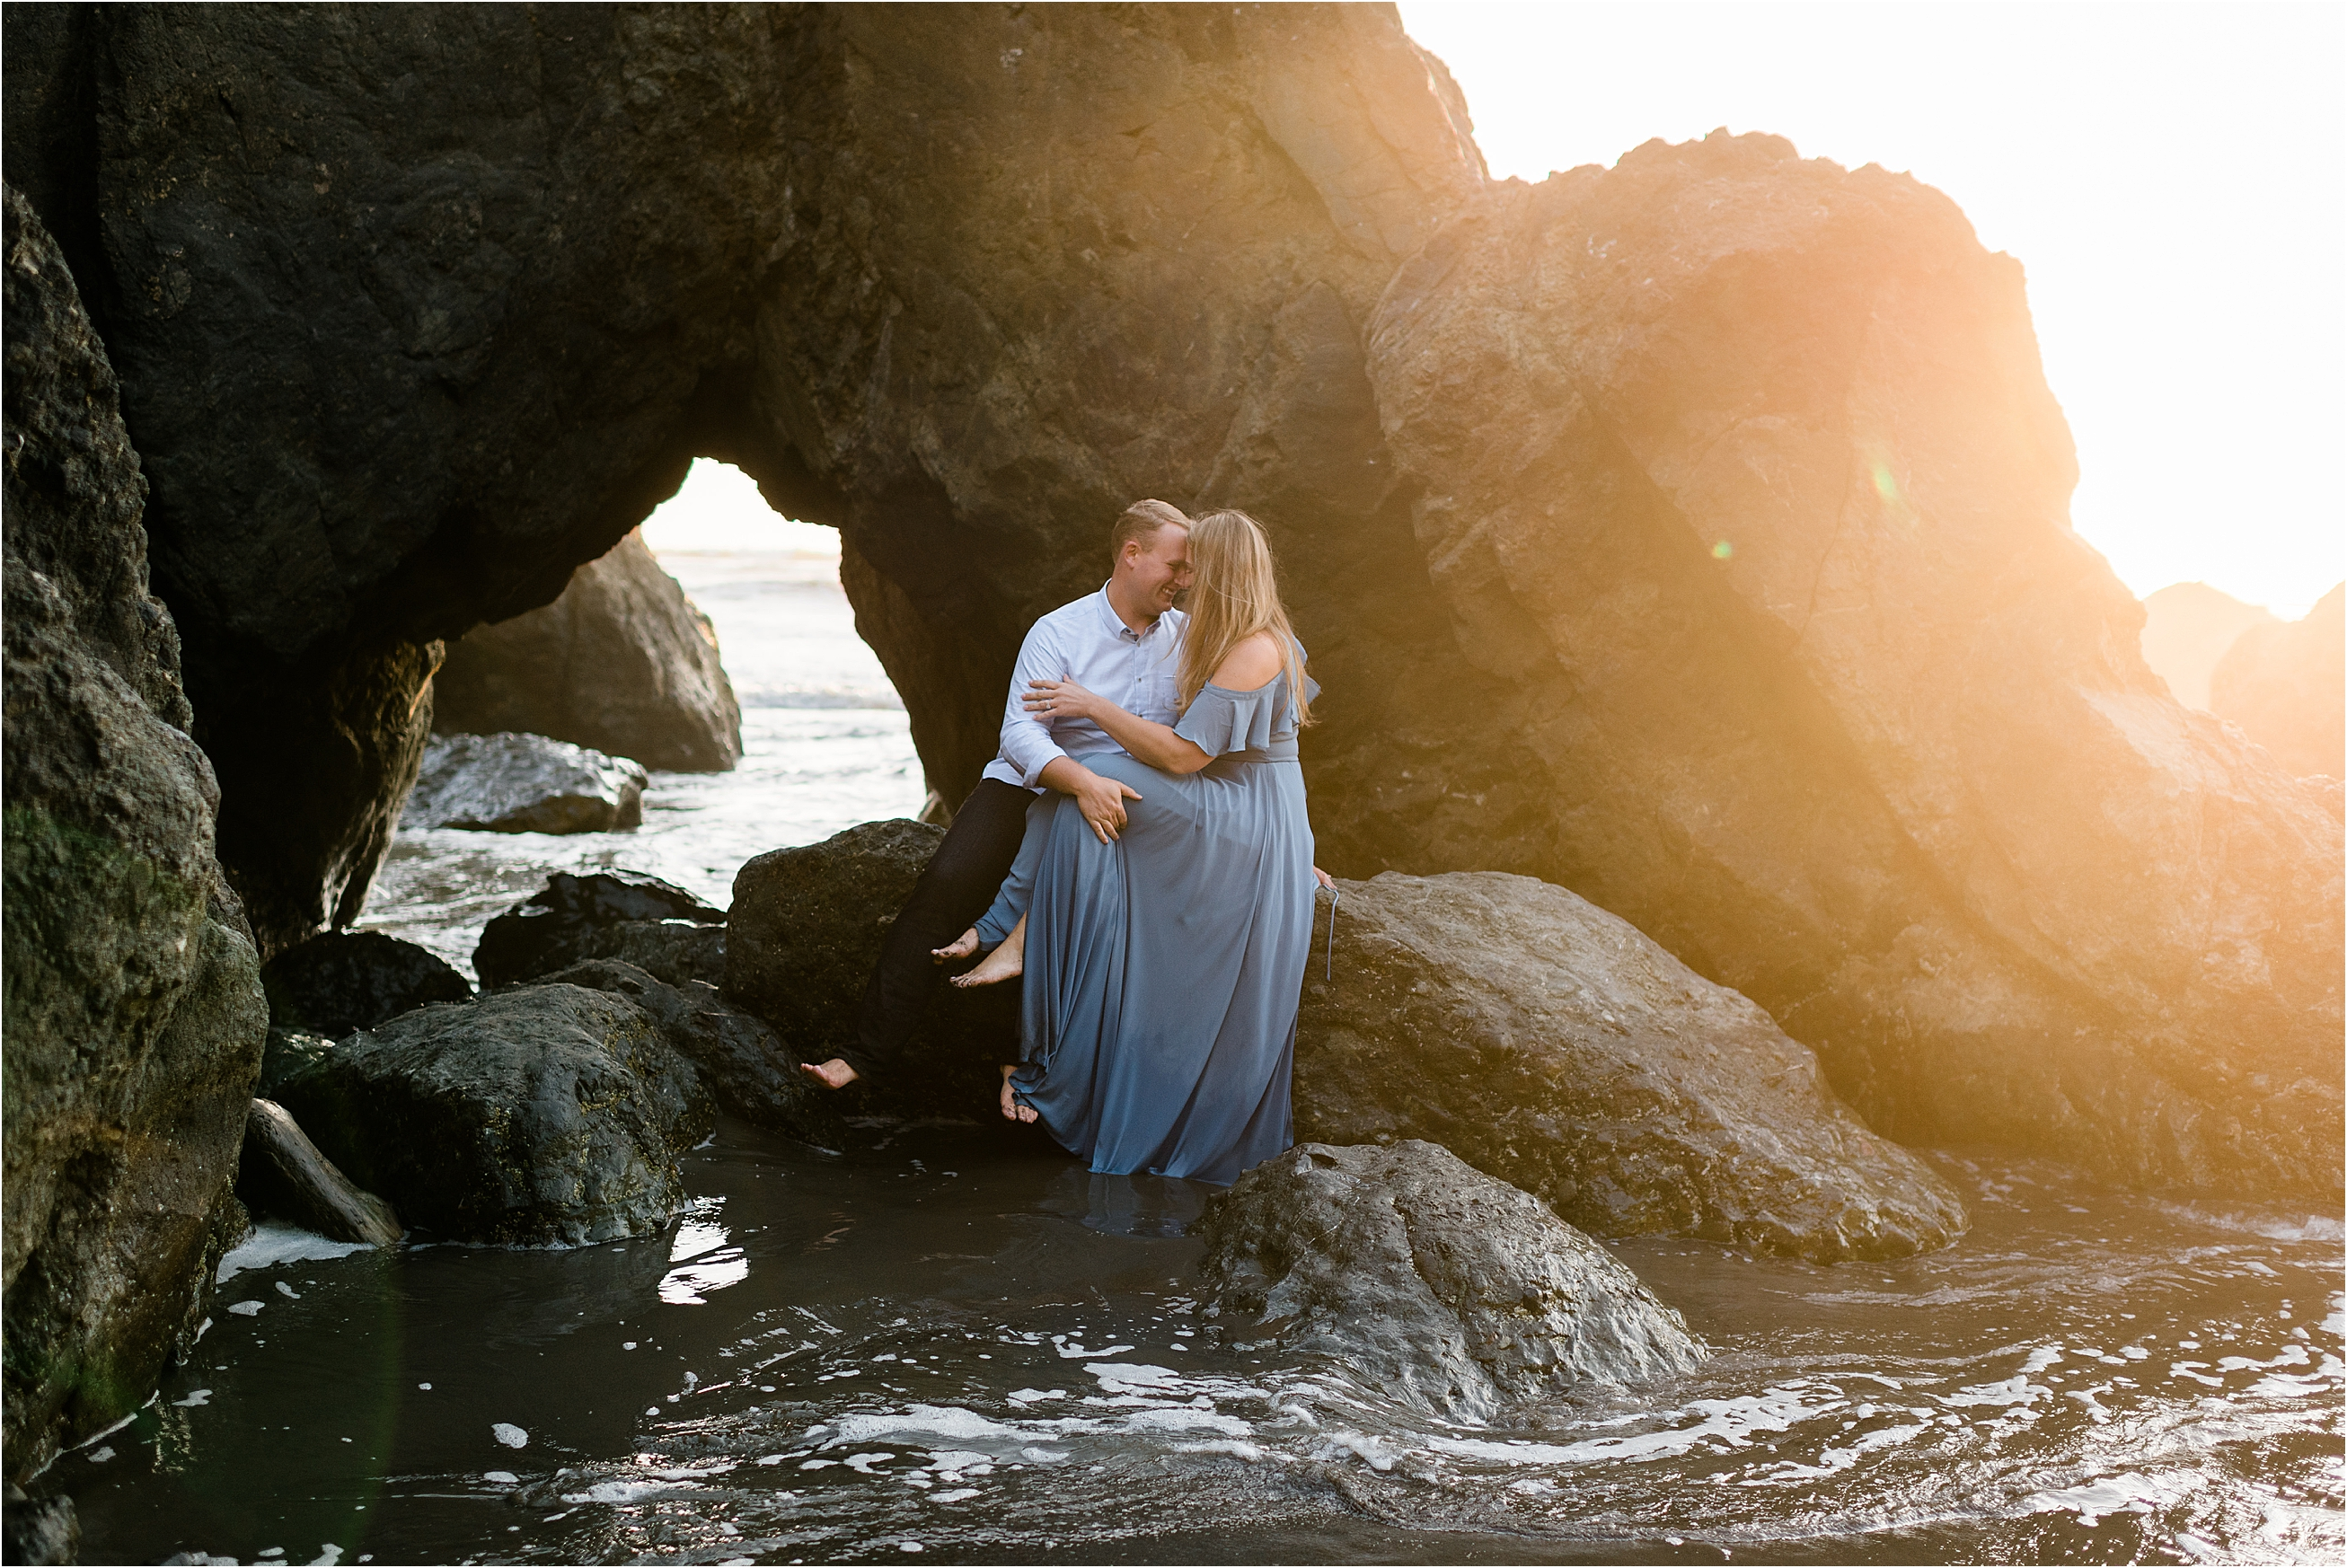 Jenny & Sam's Ruby Beach Engagement by Forthright Photo, Seattle Wedding & Elopement Photographers.